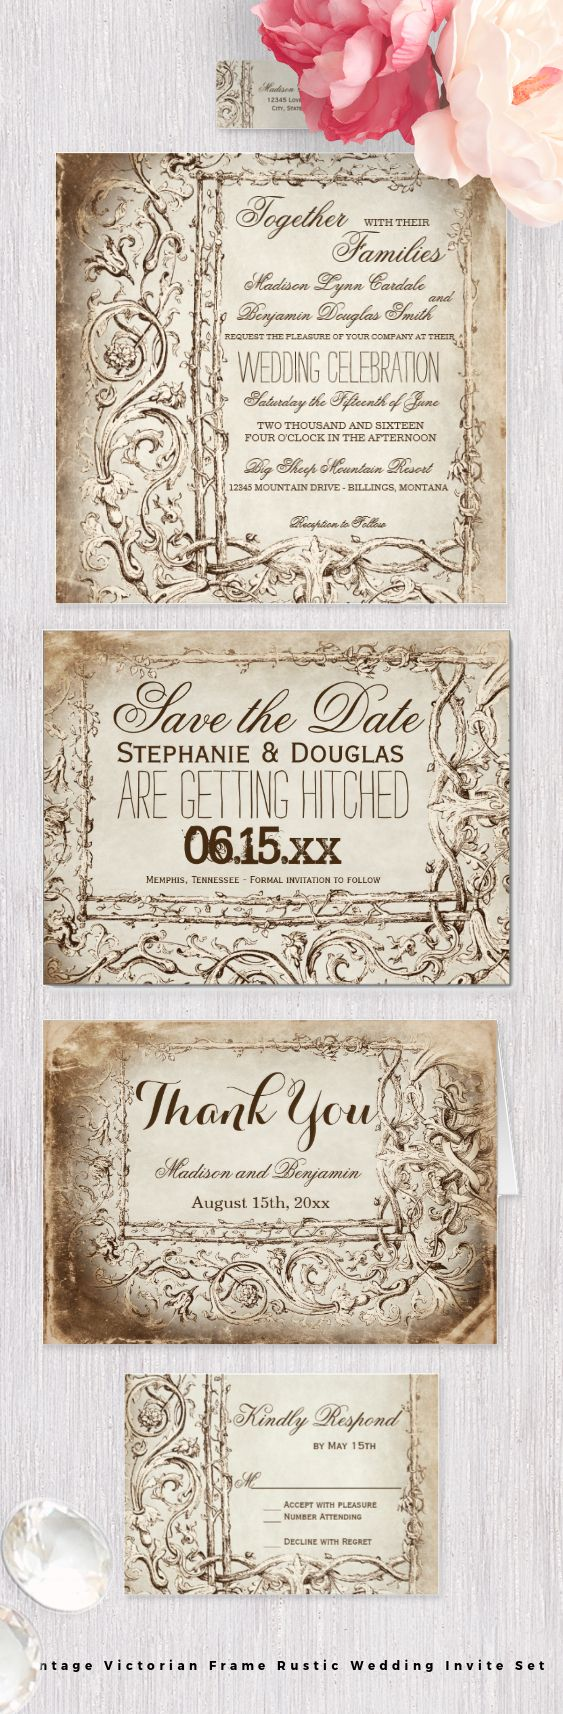 7127 best images about country style wedding invitations, ideas, Wedding invitations